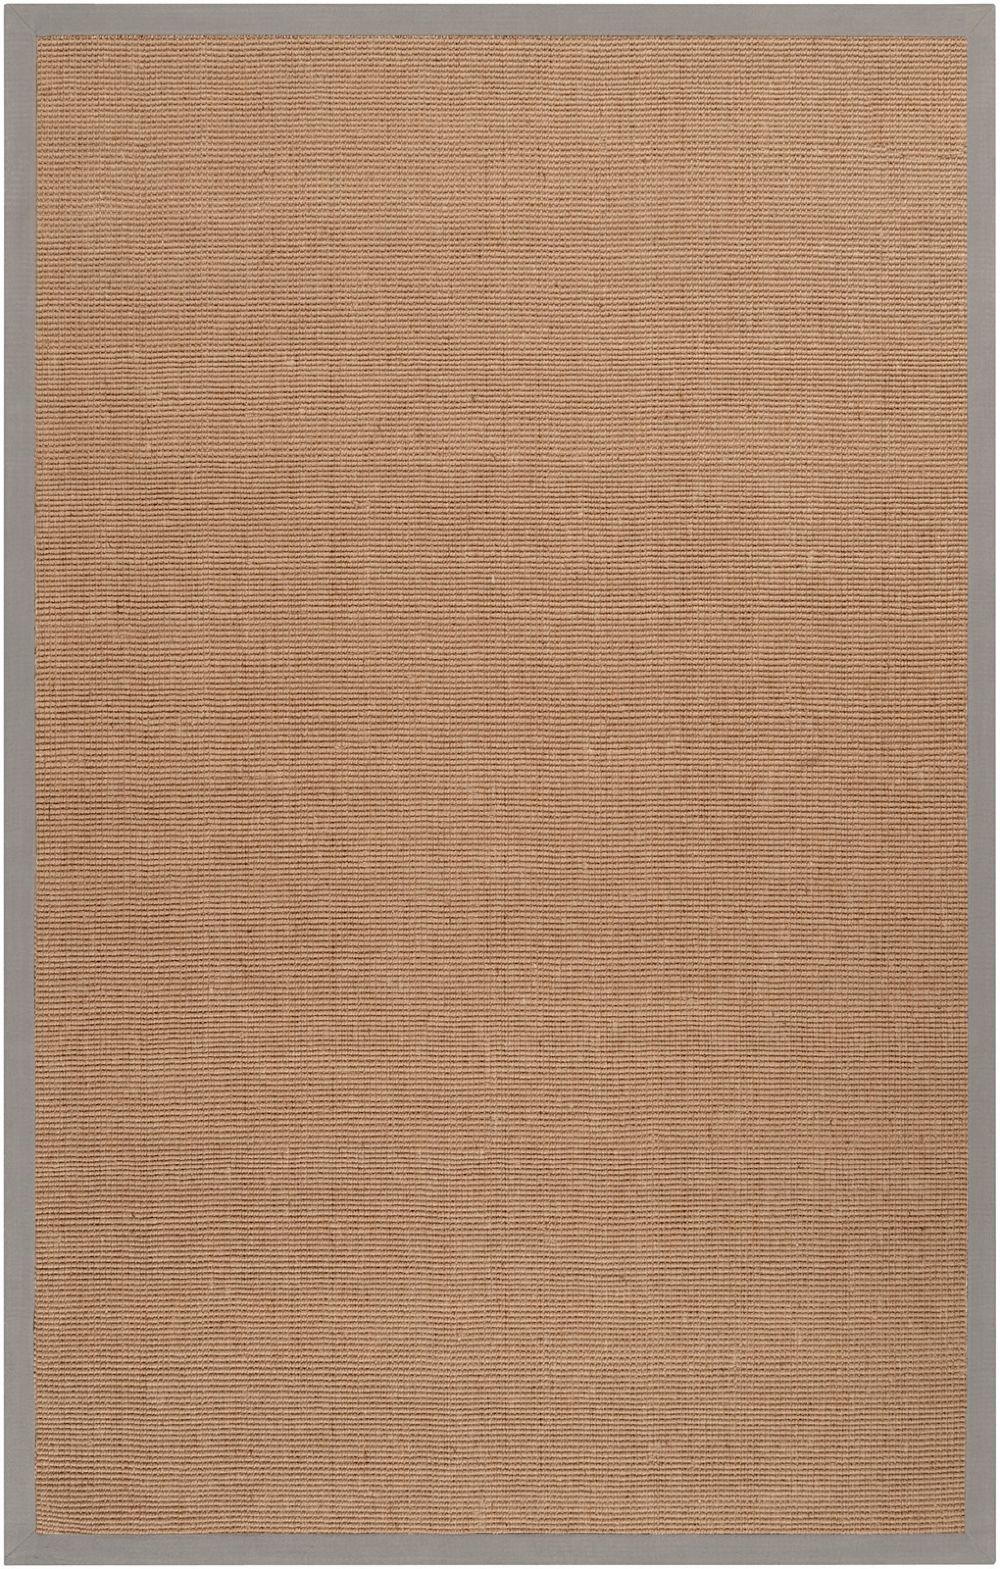 surya soho natural fiber area rug collection